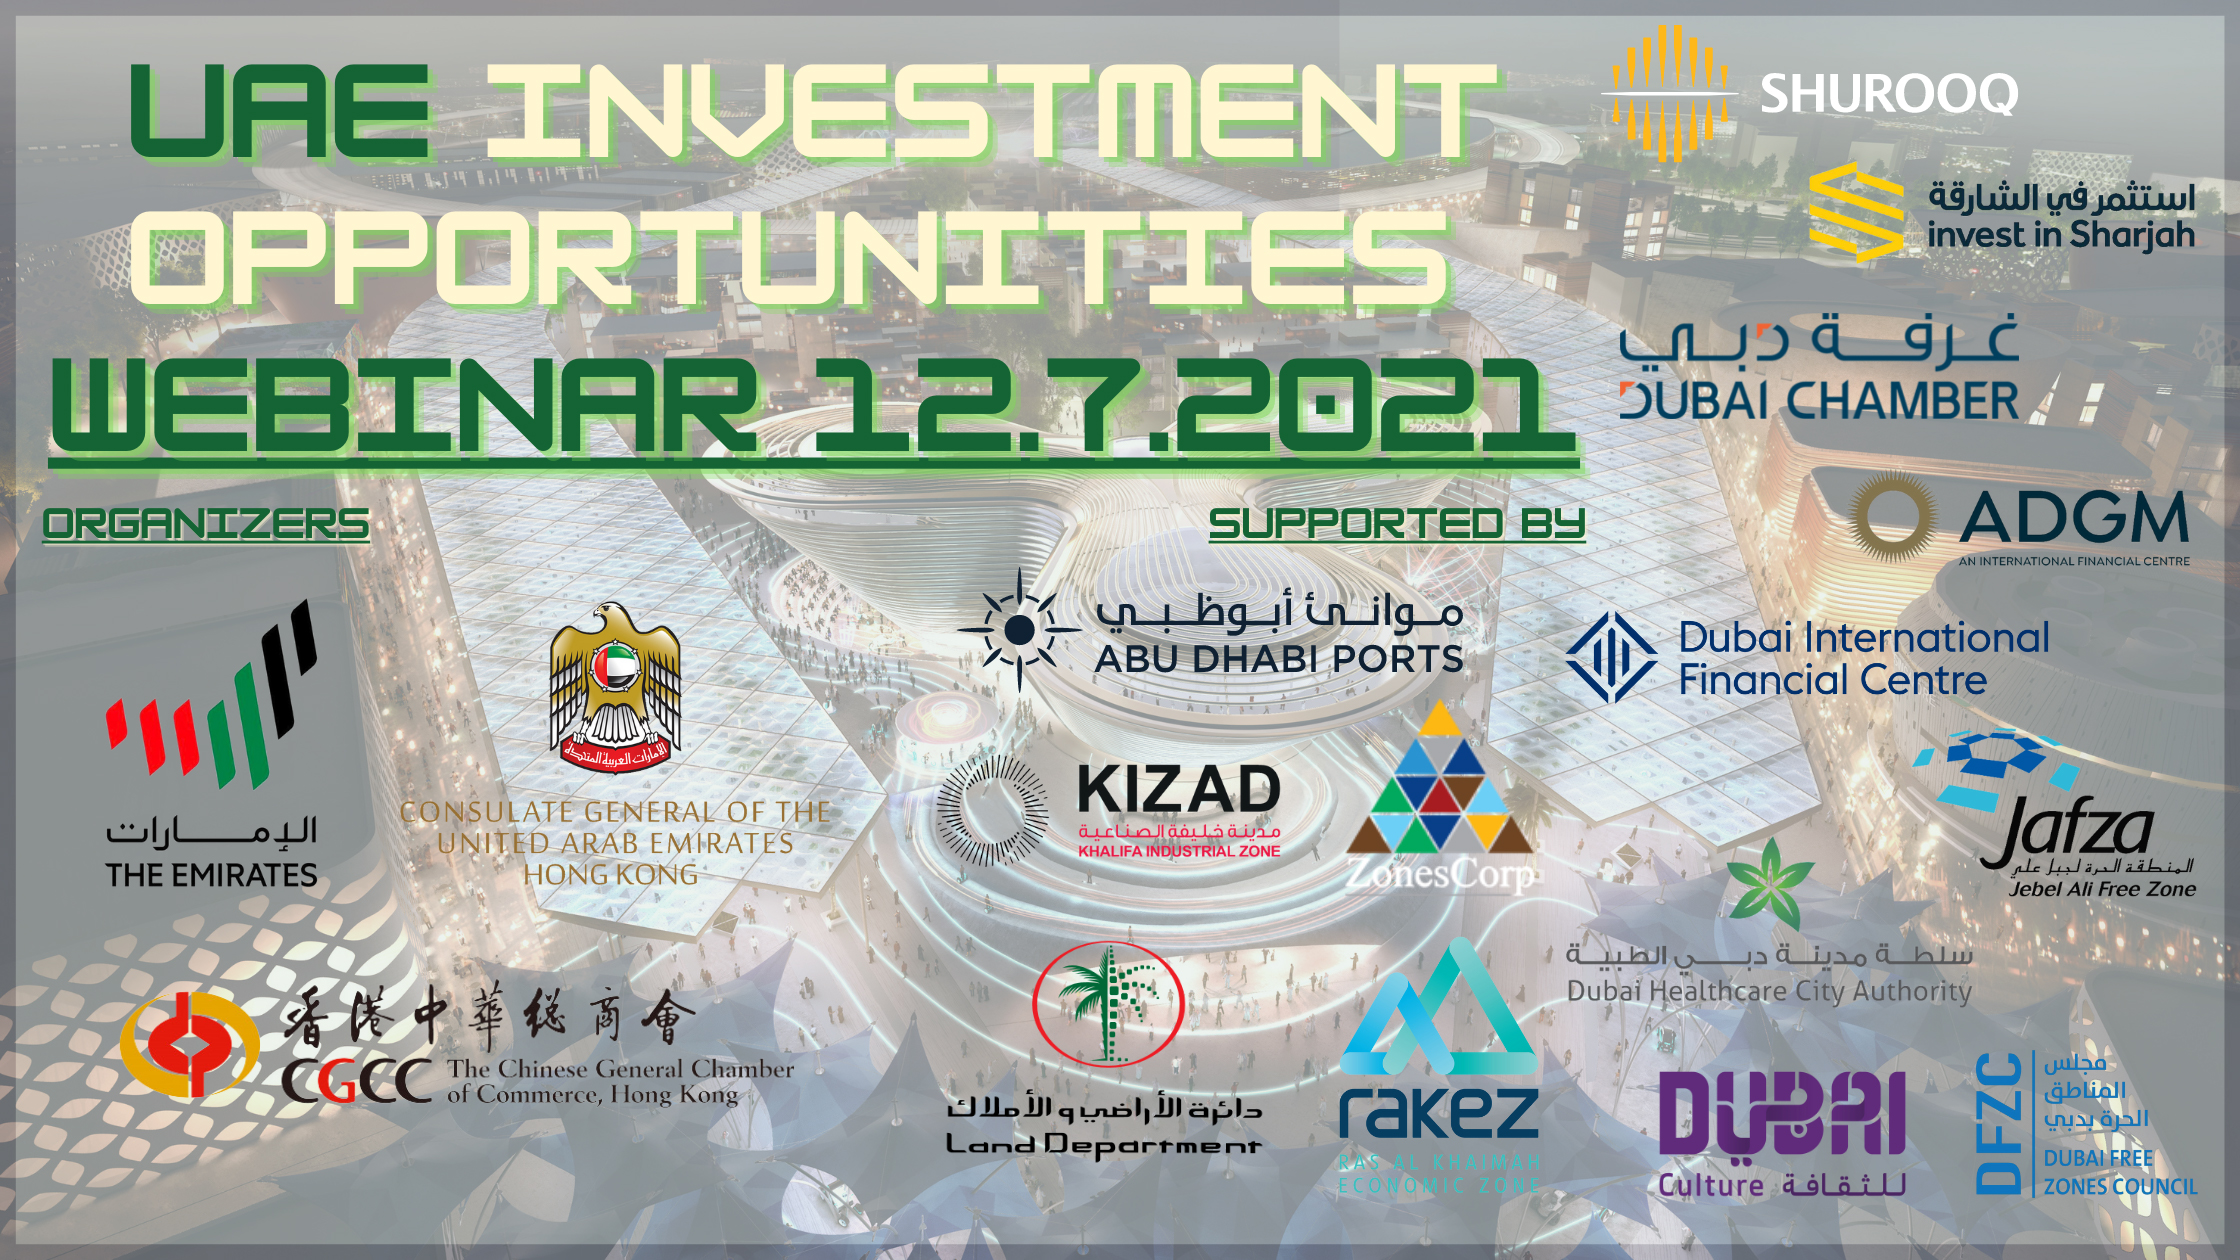 A Pre-Dubai Expo Event to Familiarize Hong Kong and Mainland Business Communities to Tap into the Booming Markets in the UAE